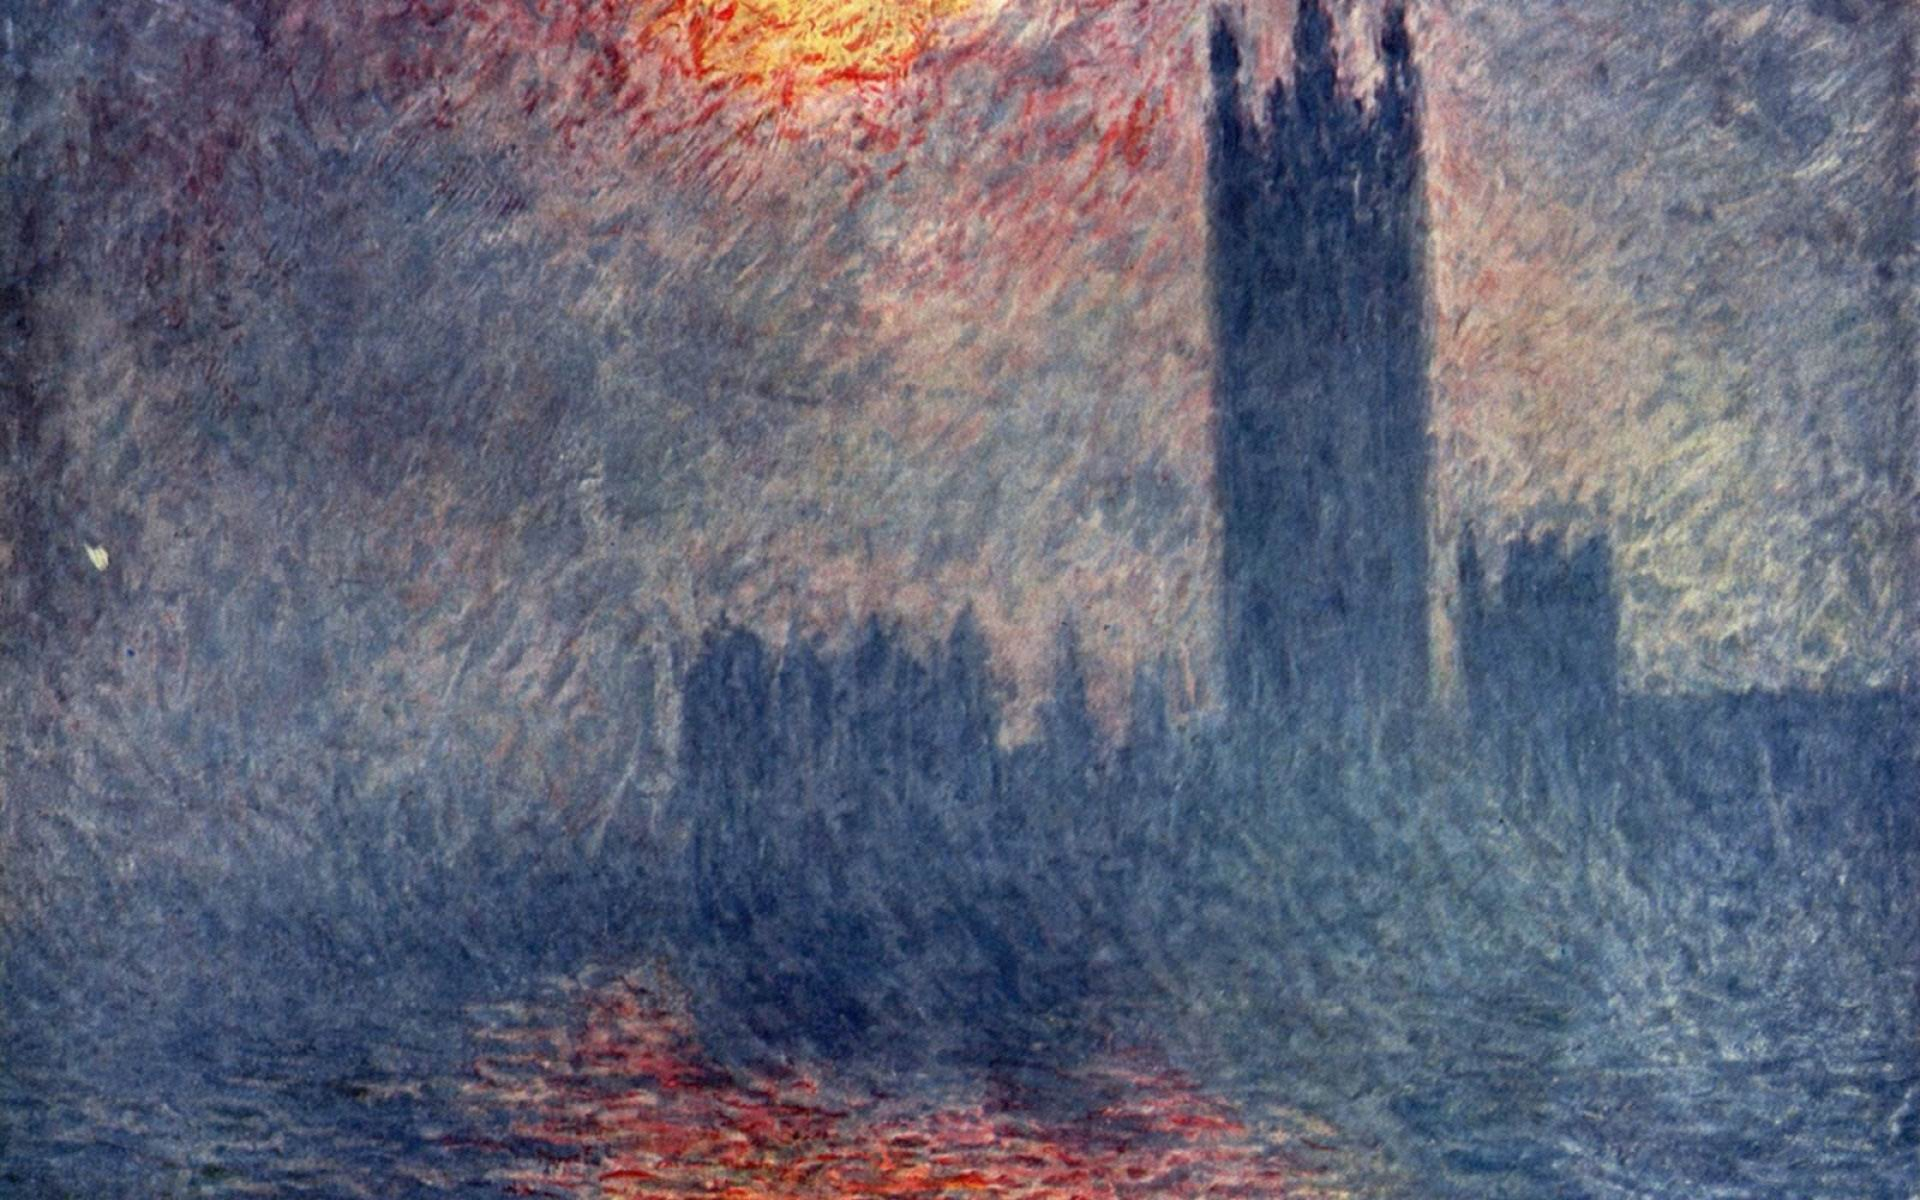 Impressionist painting 1920x1200 Wallpapers 1920x1200 Wallpapers 1920x1200